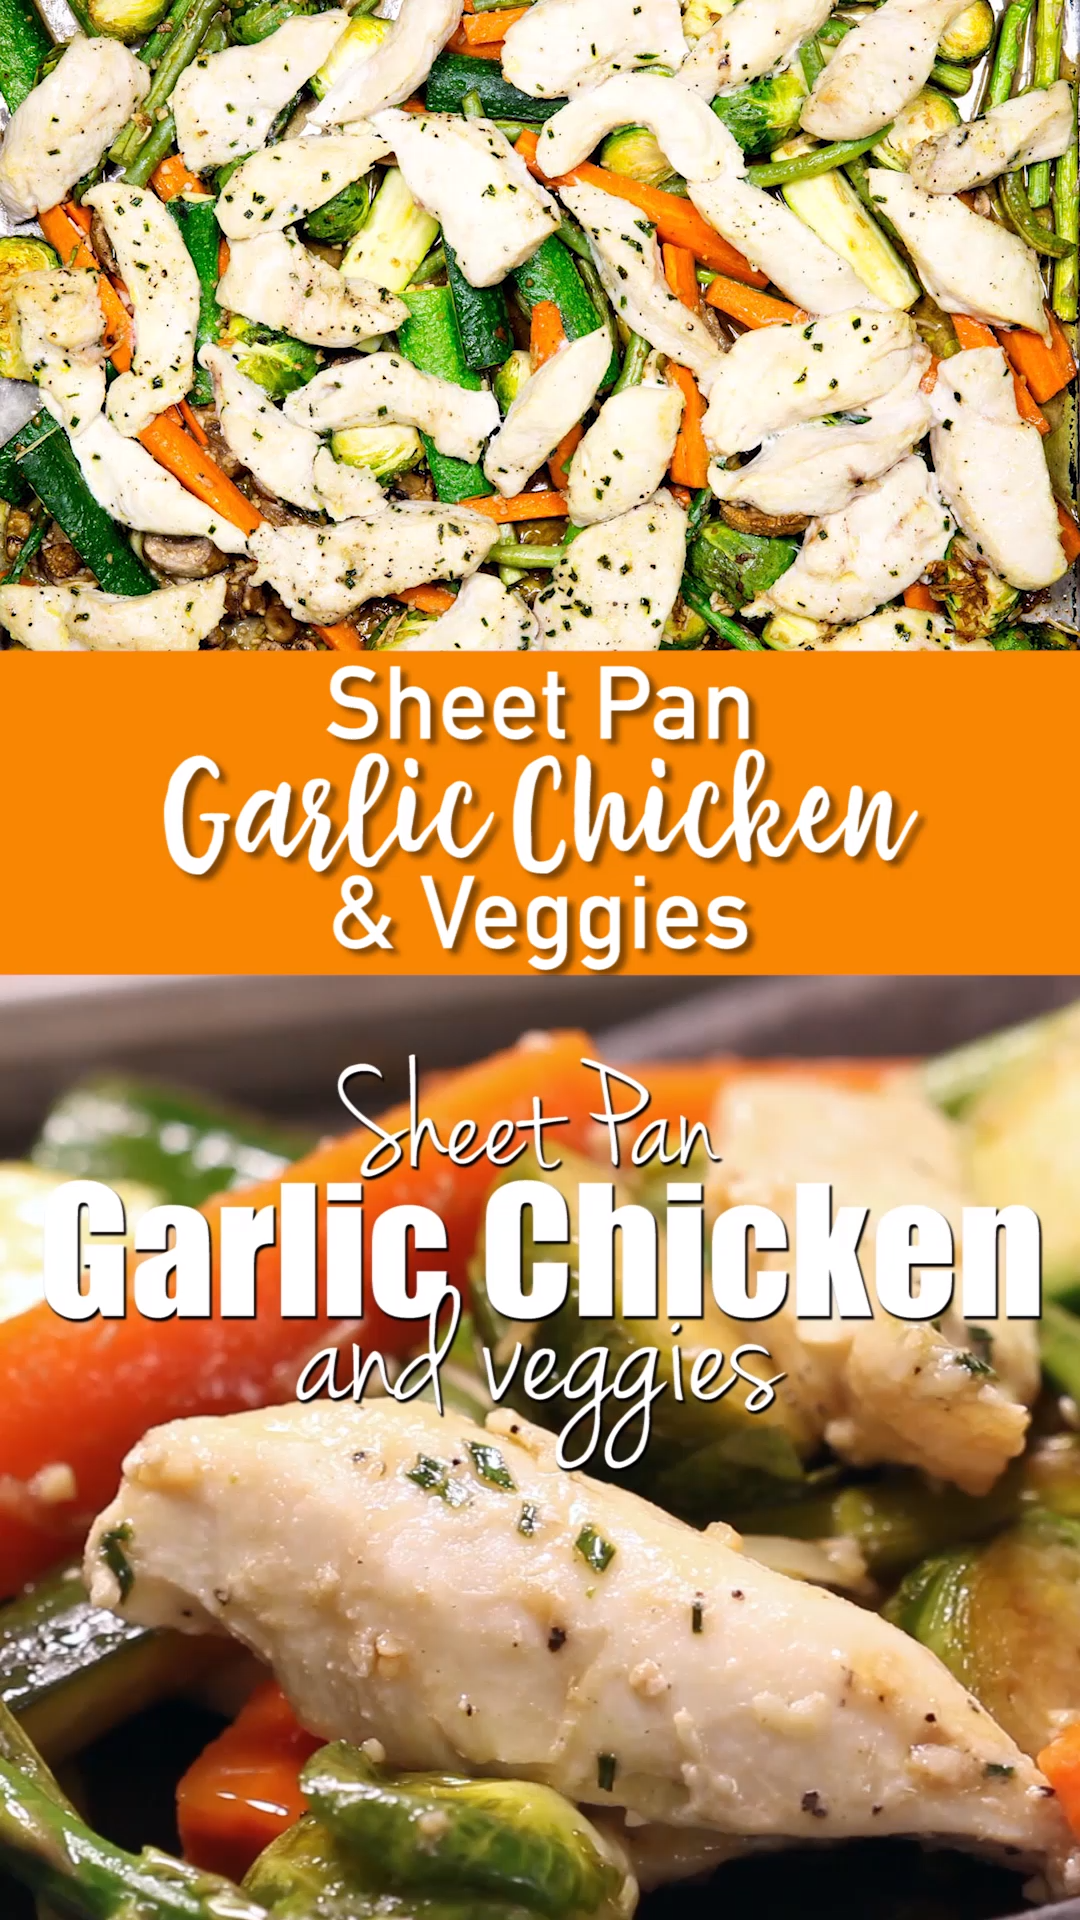 13 healthy recipes For The Week veggies ideas